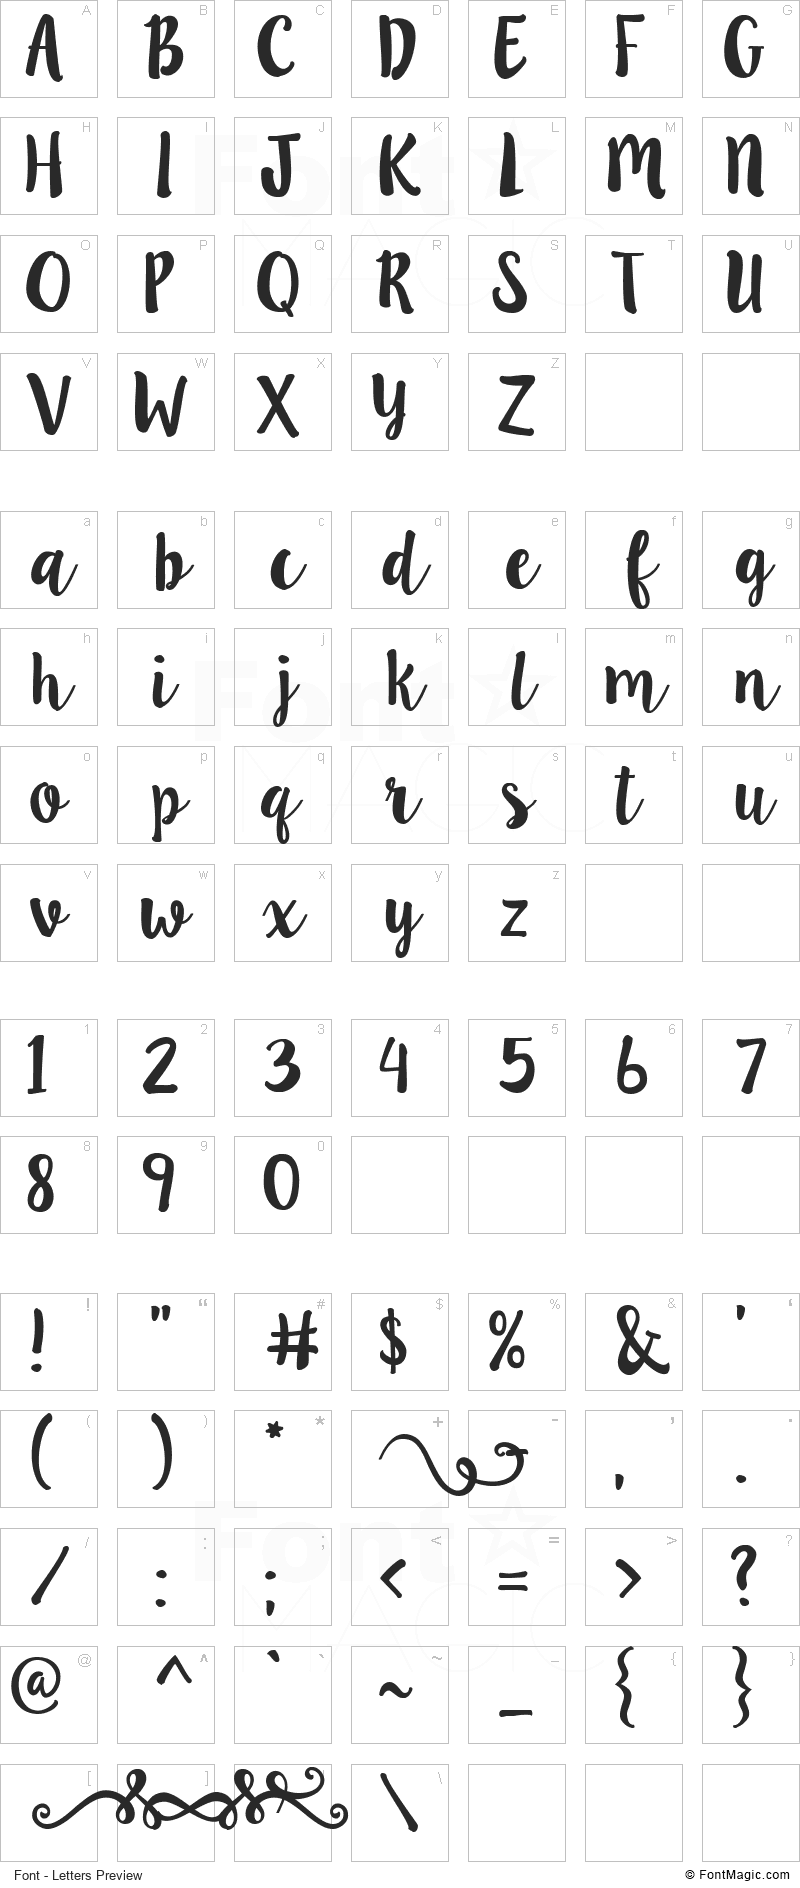 LillyBelle Font - All Latters Preview Chart